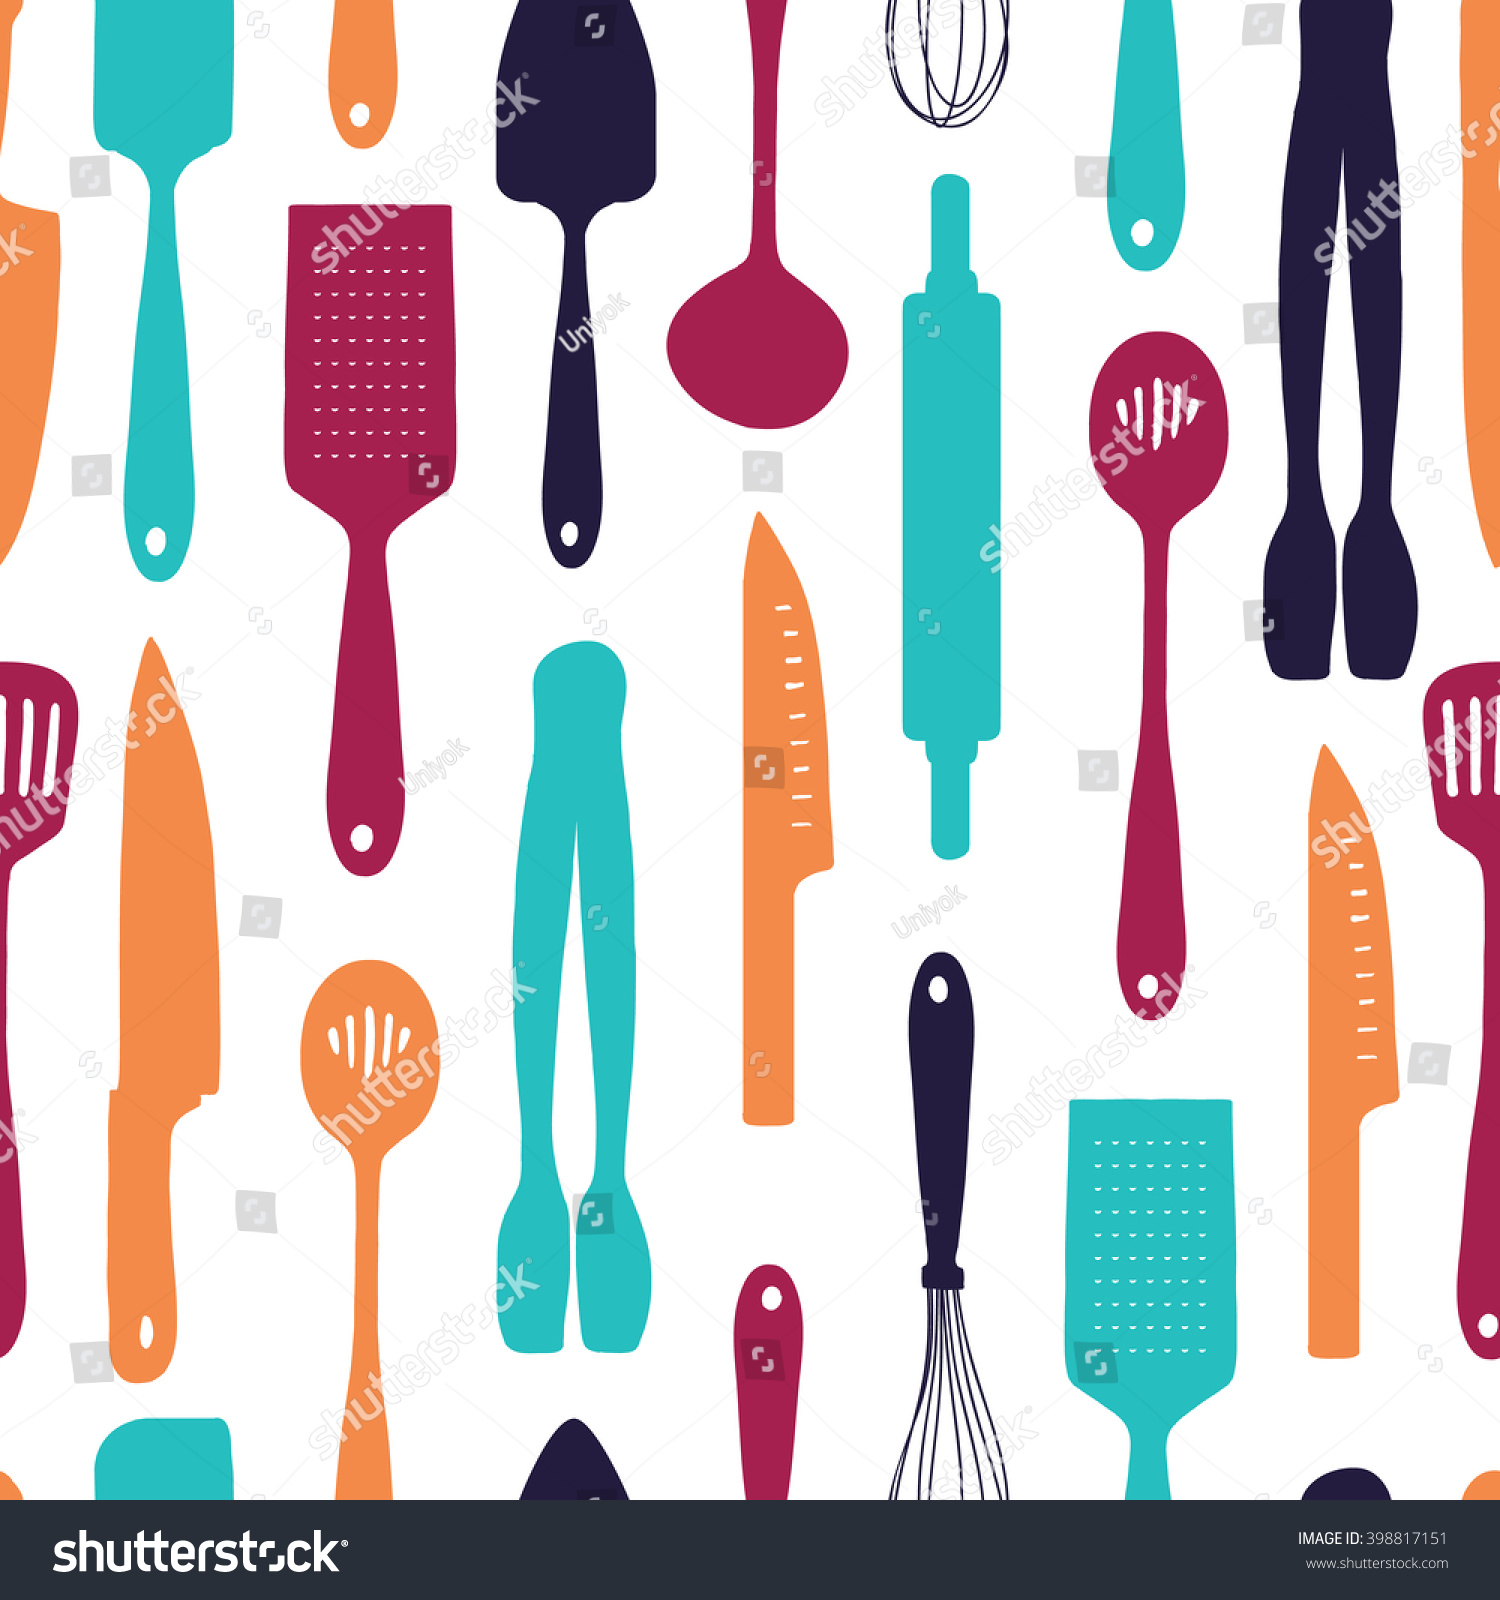 Seamless Background Pattern Silhouette Cutlery Vertical Stock Vector ...